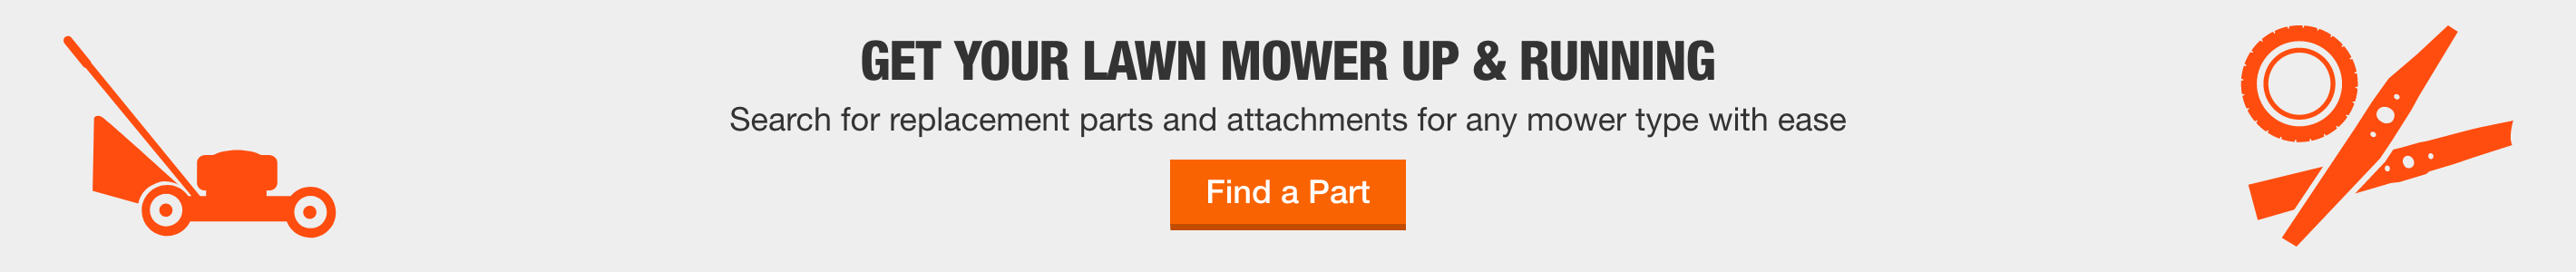 GET YOUR LAWN MOWER UP & RUNNING  Search for replacement parts and attachments for any mower type with ease  Find a Part